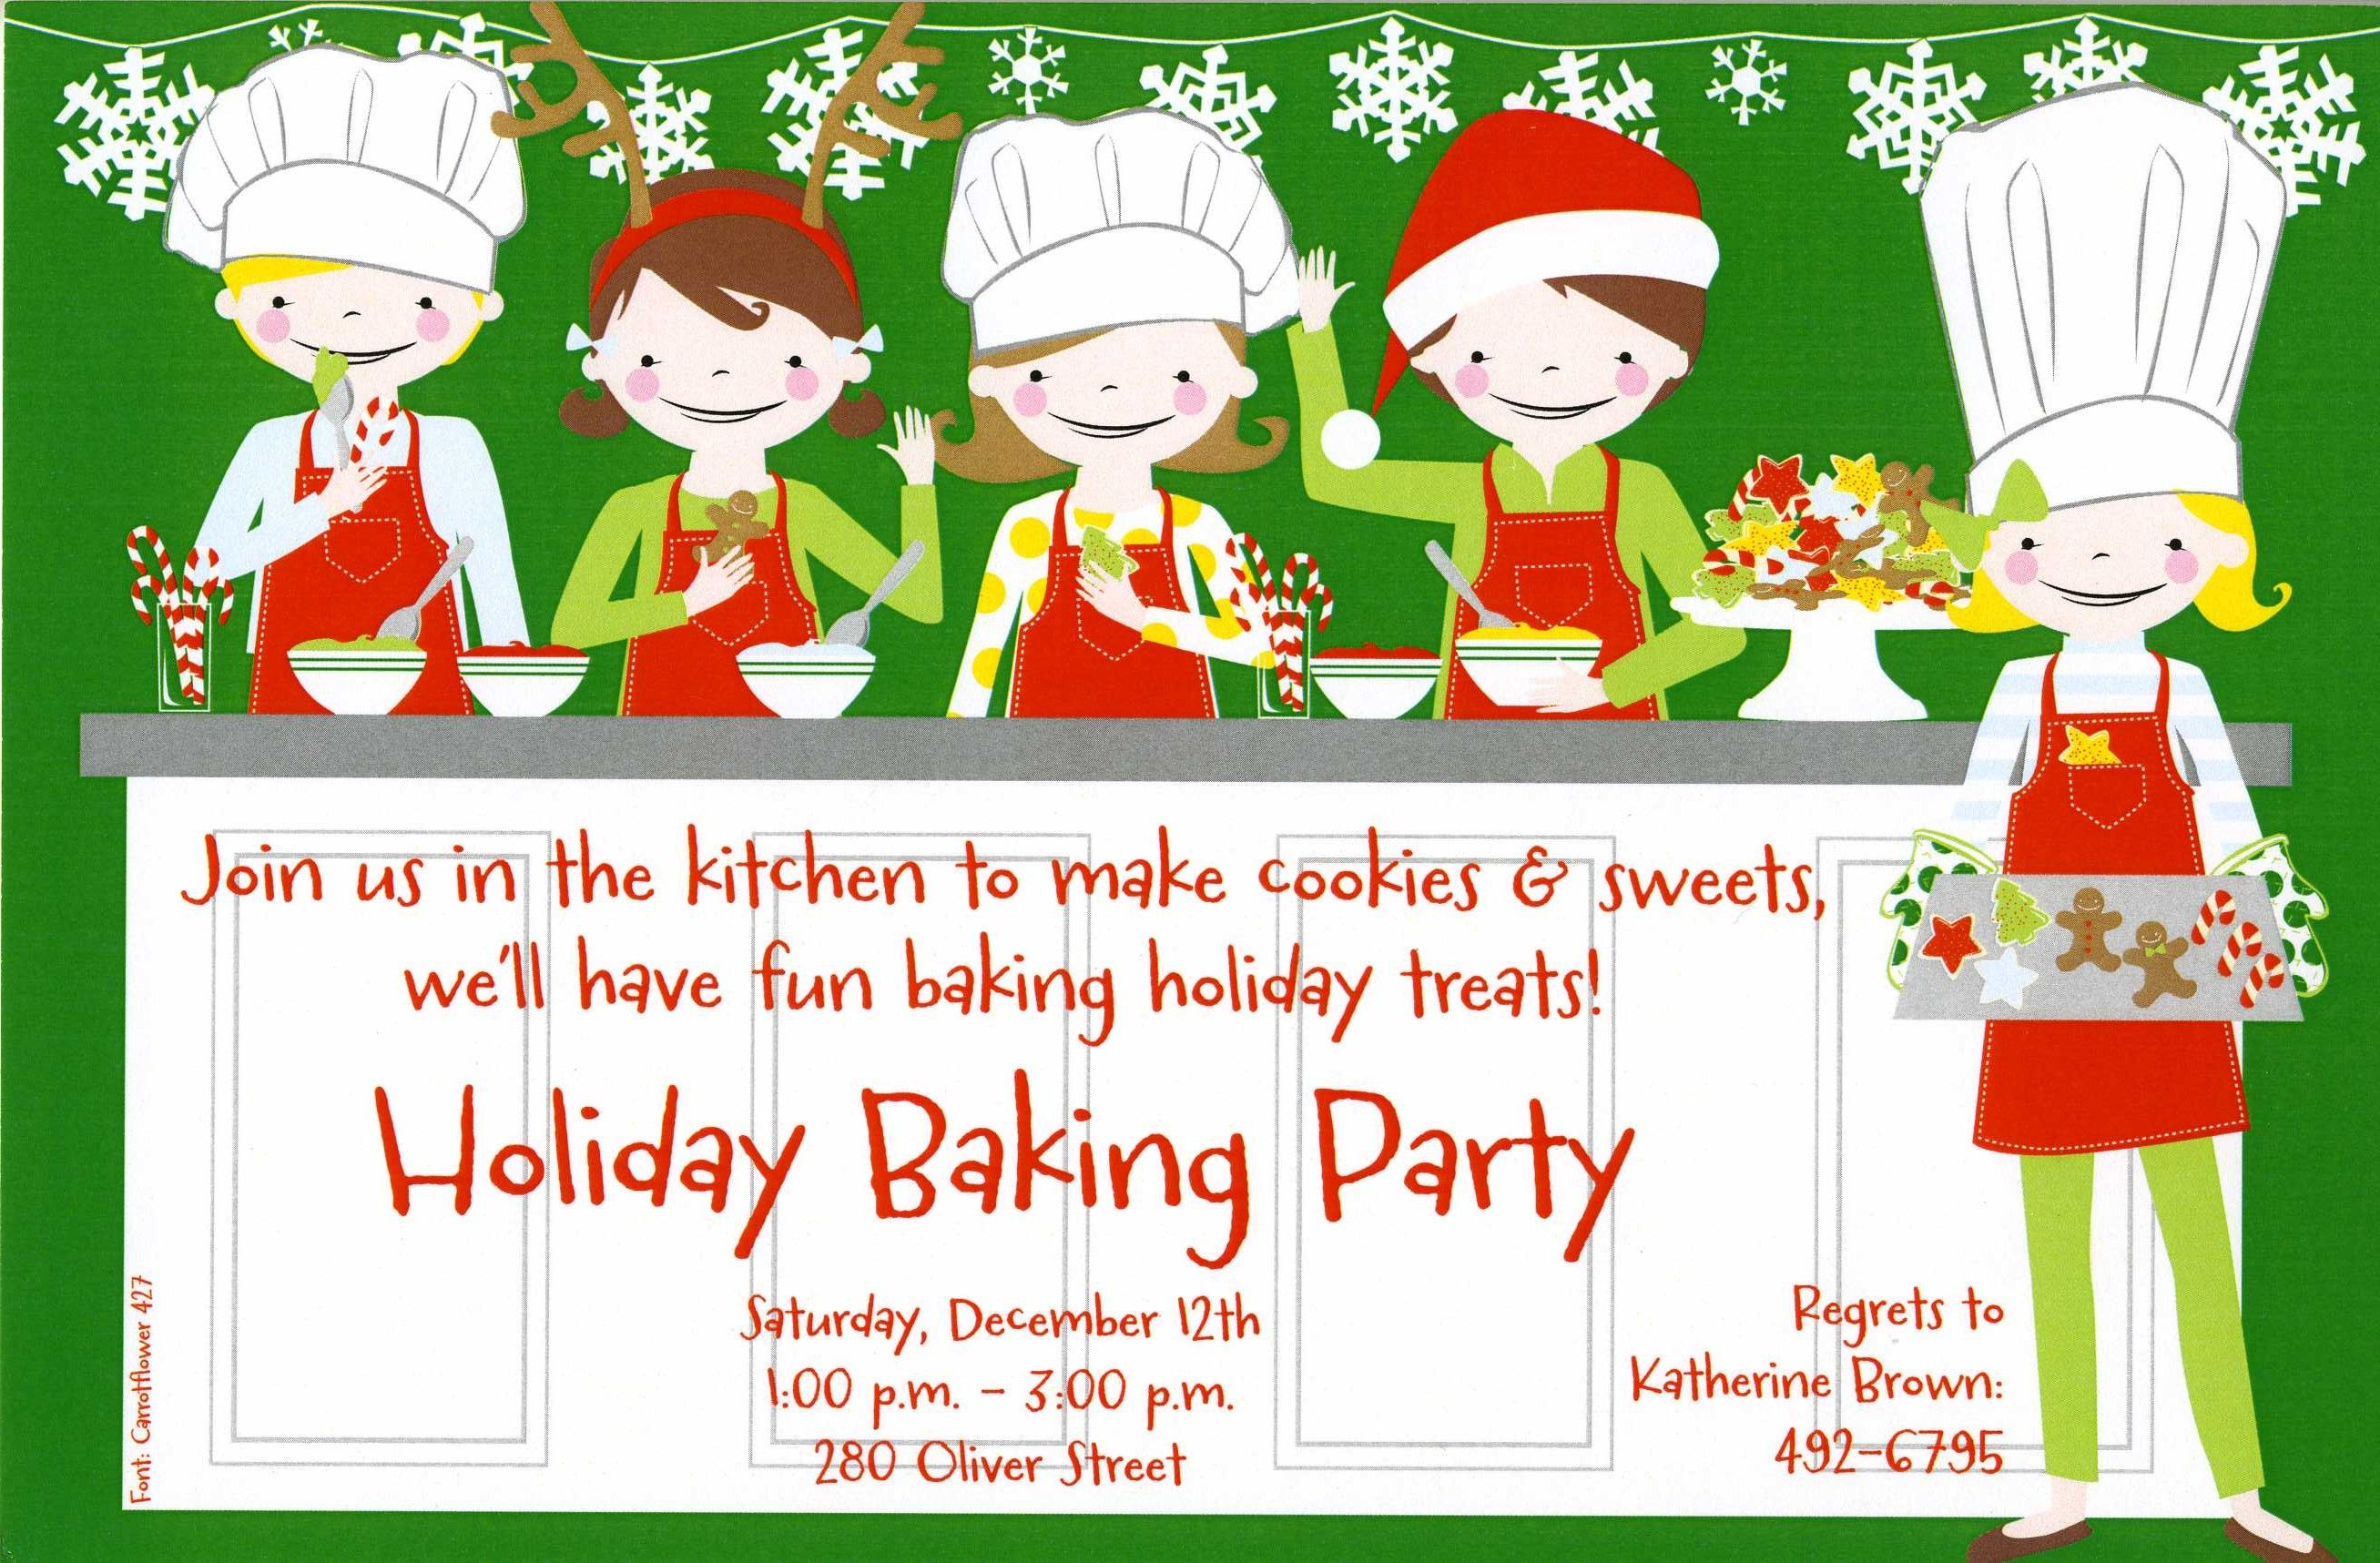 Awesome Christmas Cookie Baking Party Ideas Part - 2: Quick View - Cookie Kids - Impressions In Print - Paper, Photo Cards,  Custom Invitations